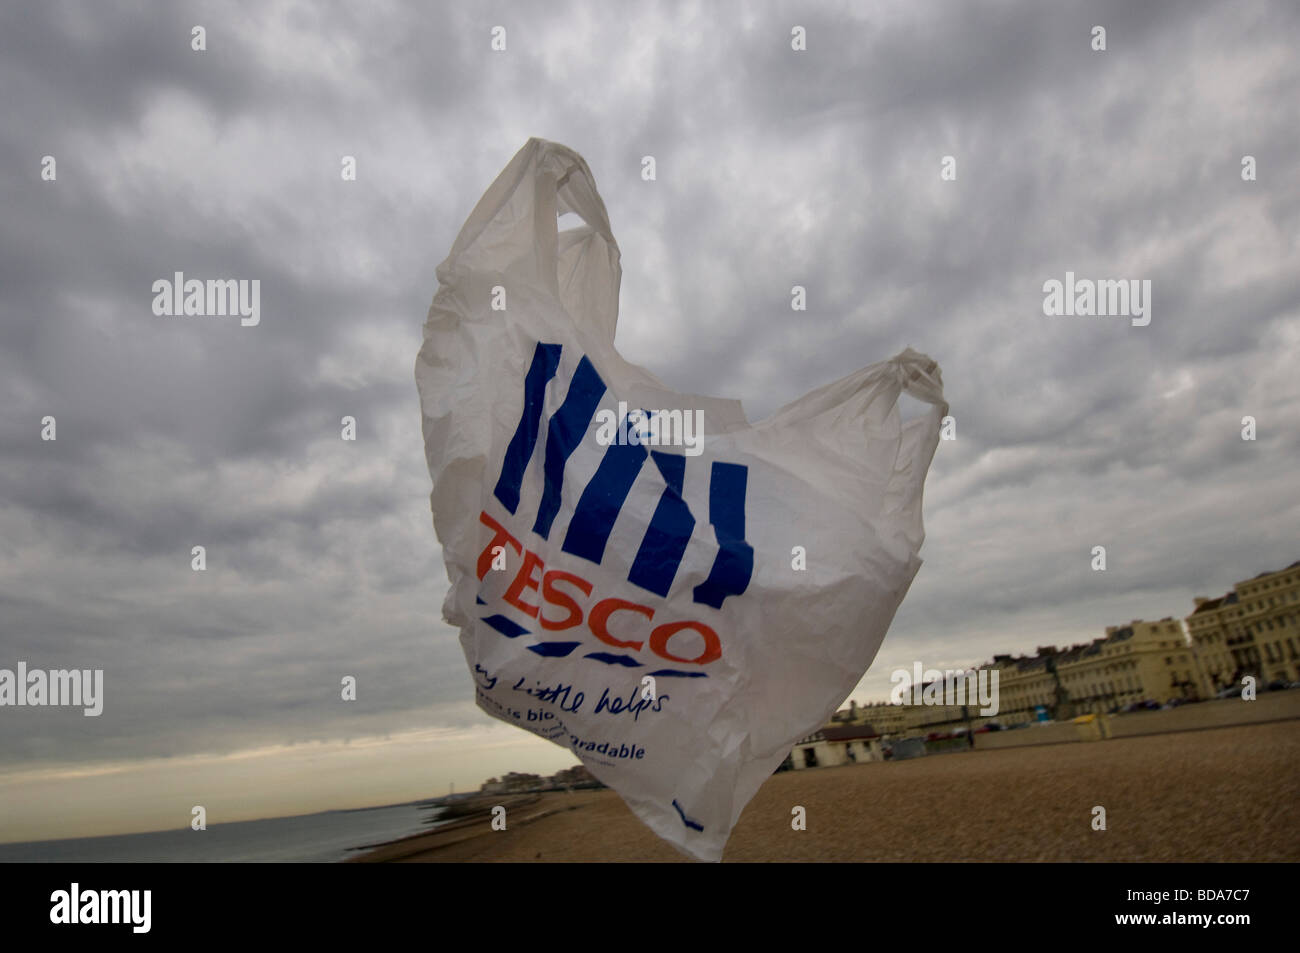 A tesco supermarket plastic bag blown in the wind on a beach - Stock Image